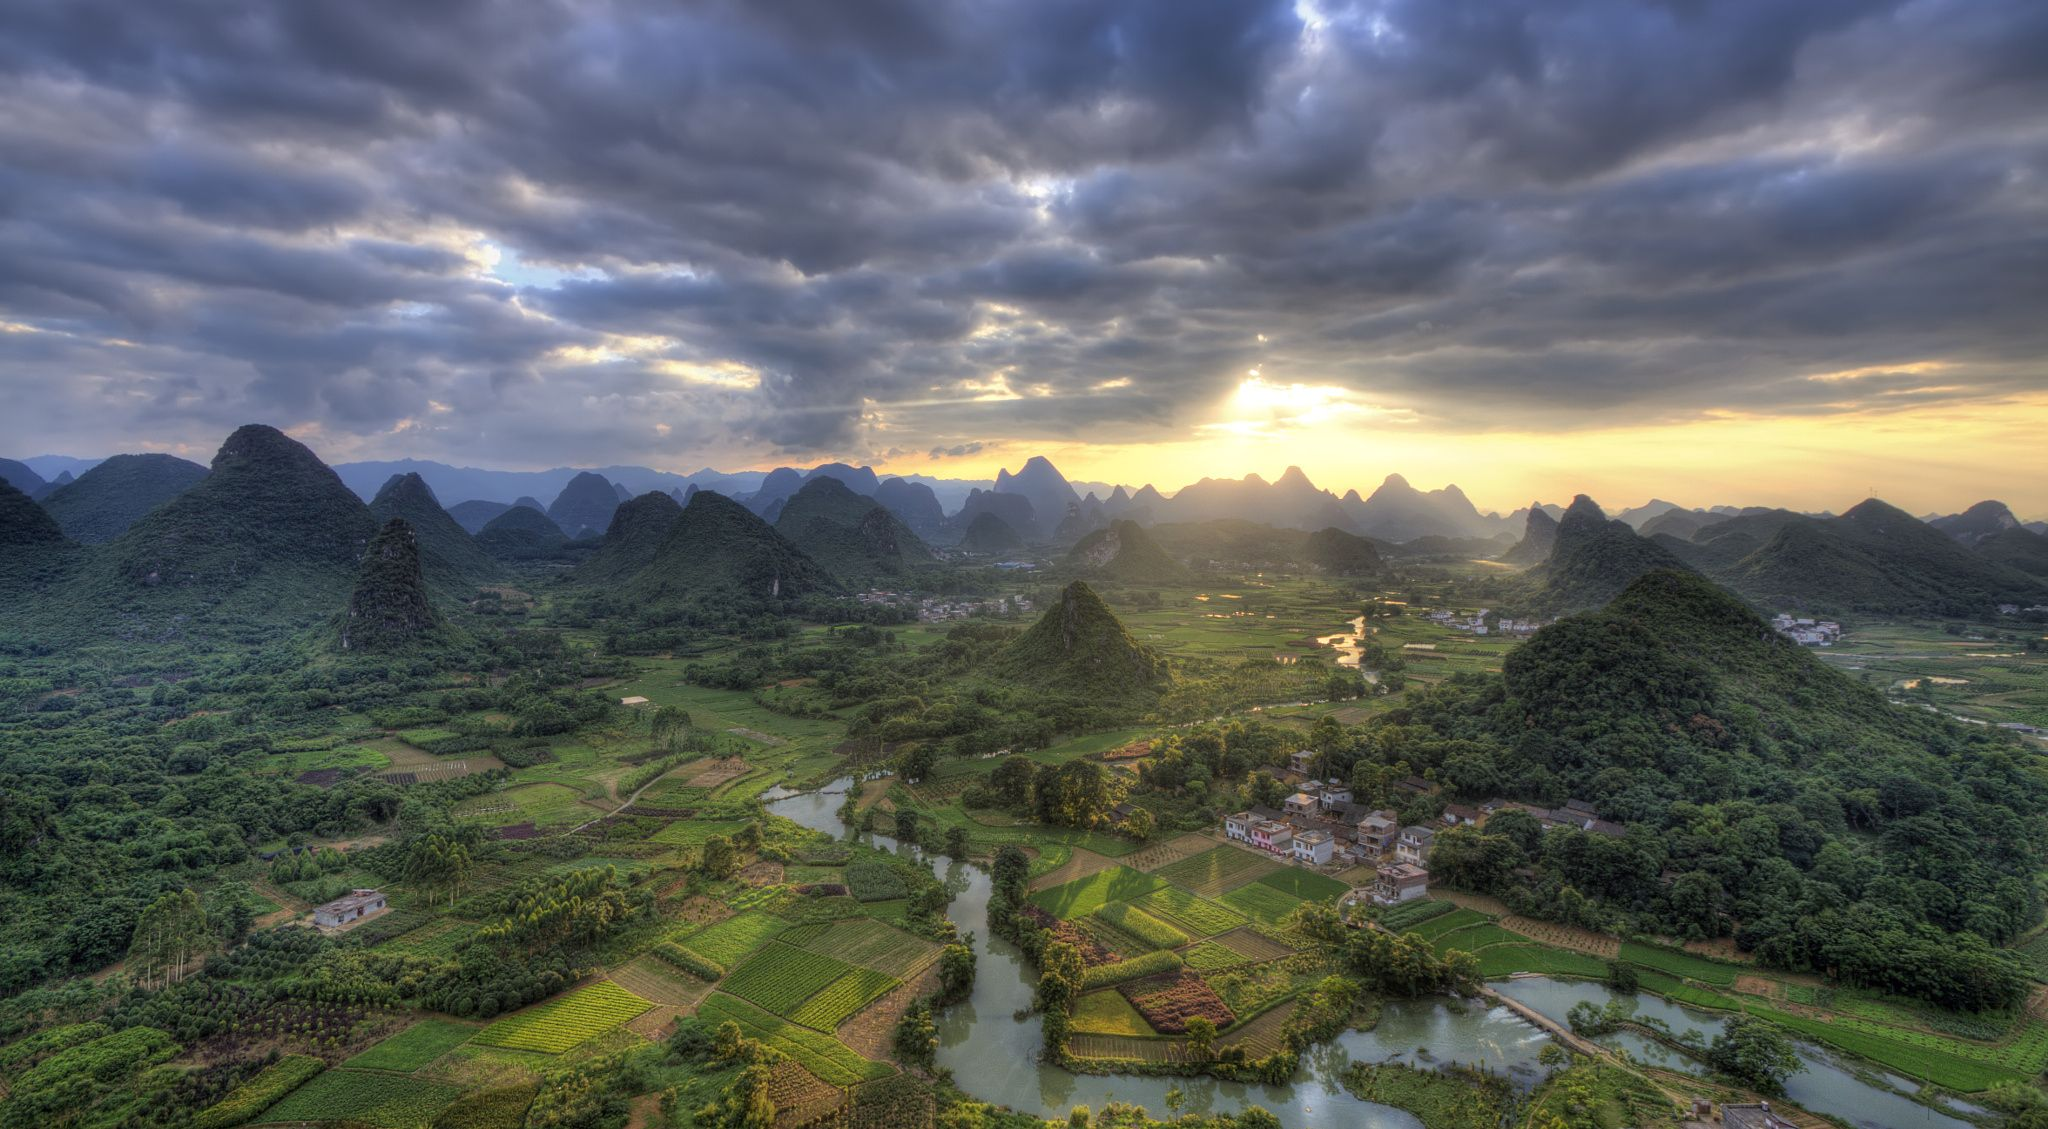 cuiping area located near yangshuo guangxi province china. http://www.anotherdayattheoffice.org/